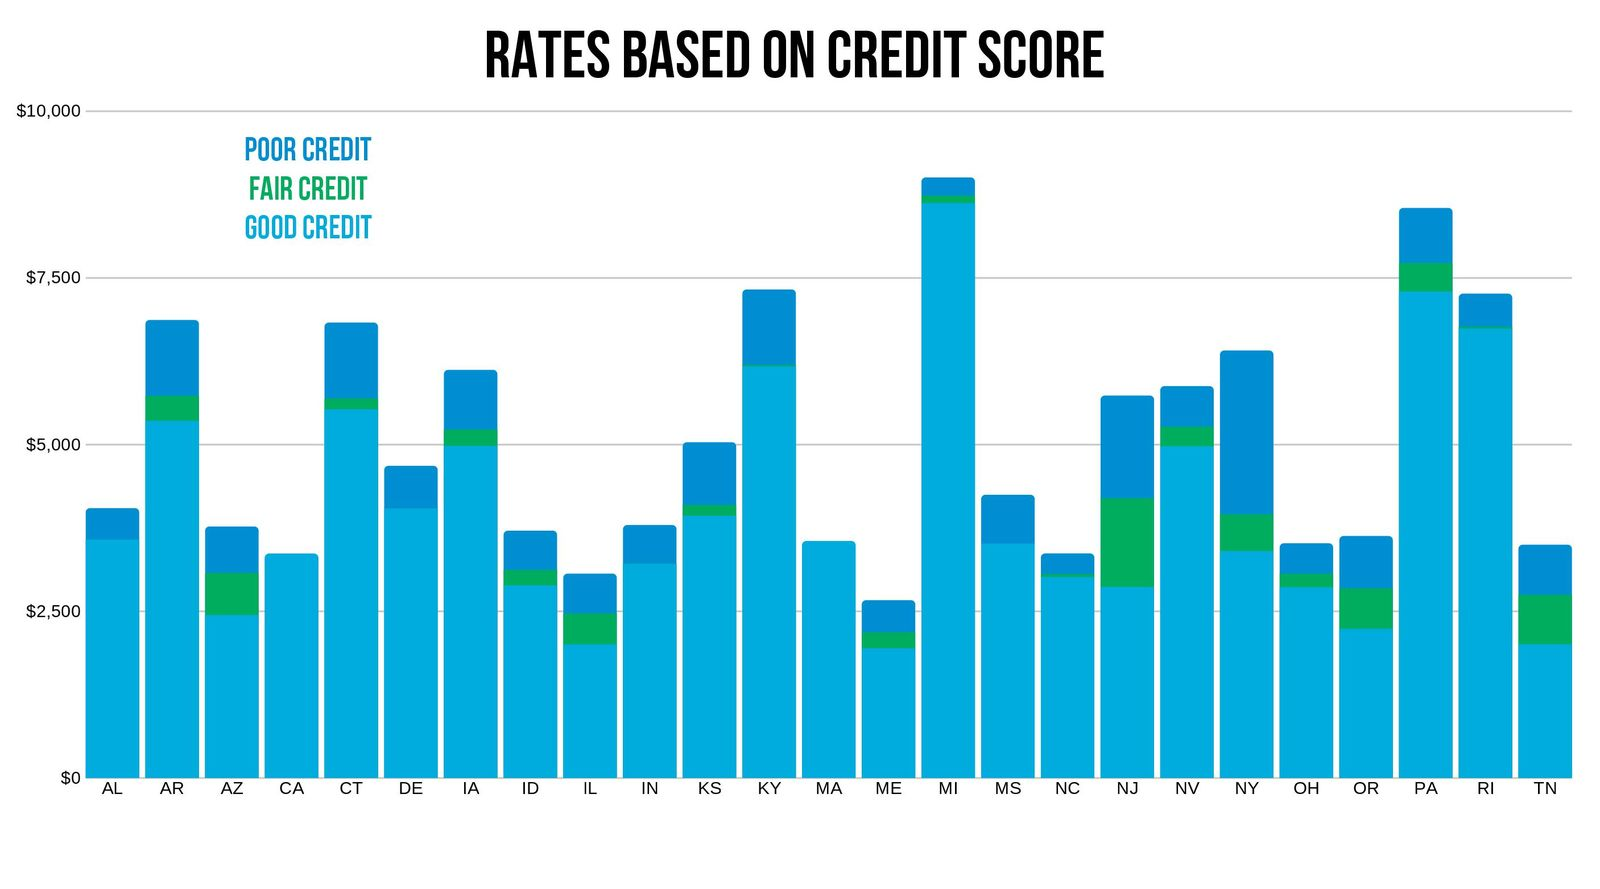 Travelers rates by credit score by state